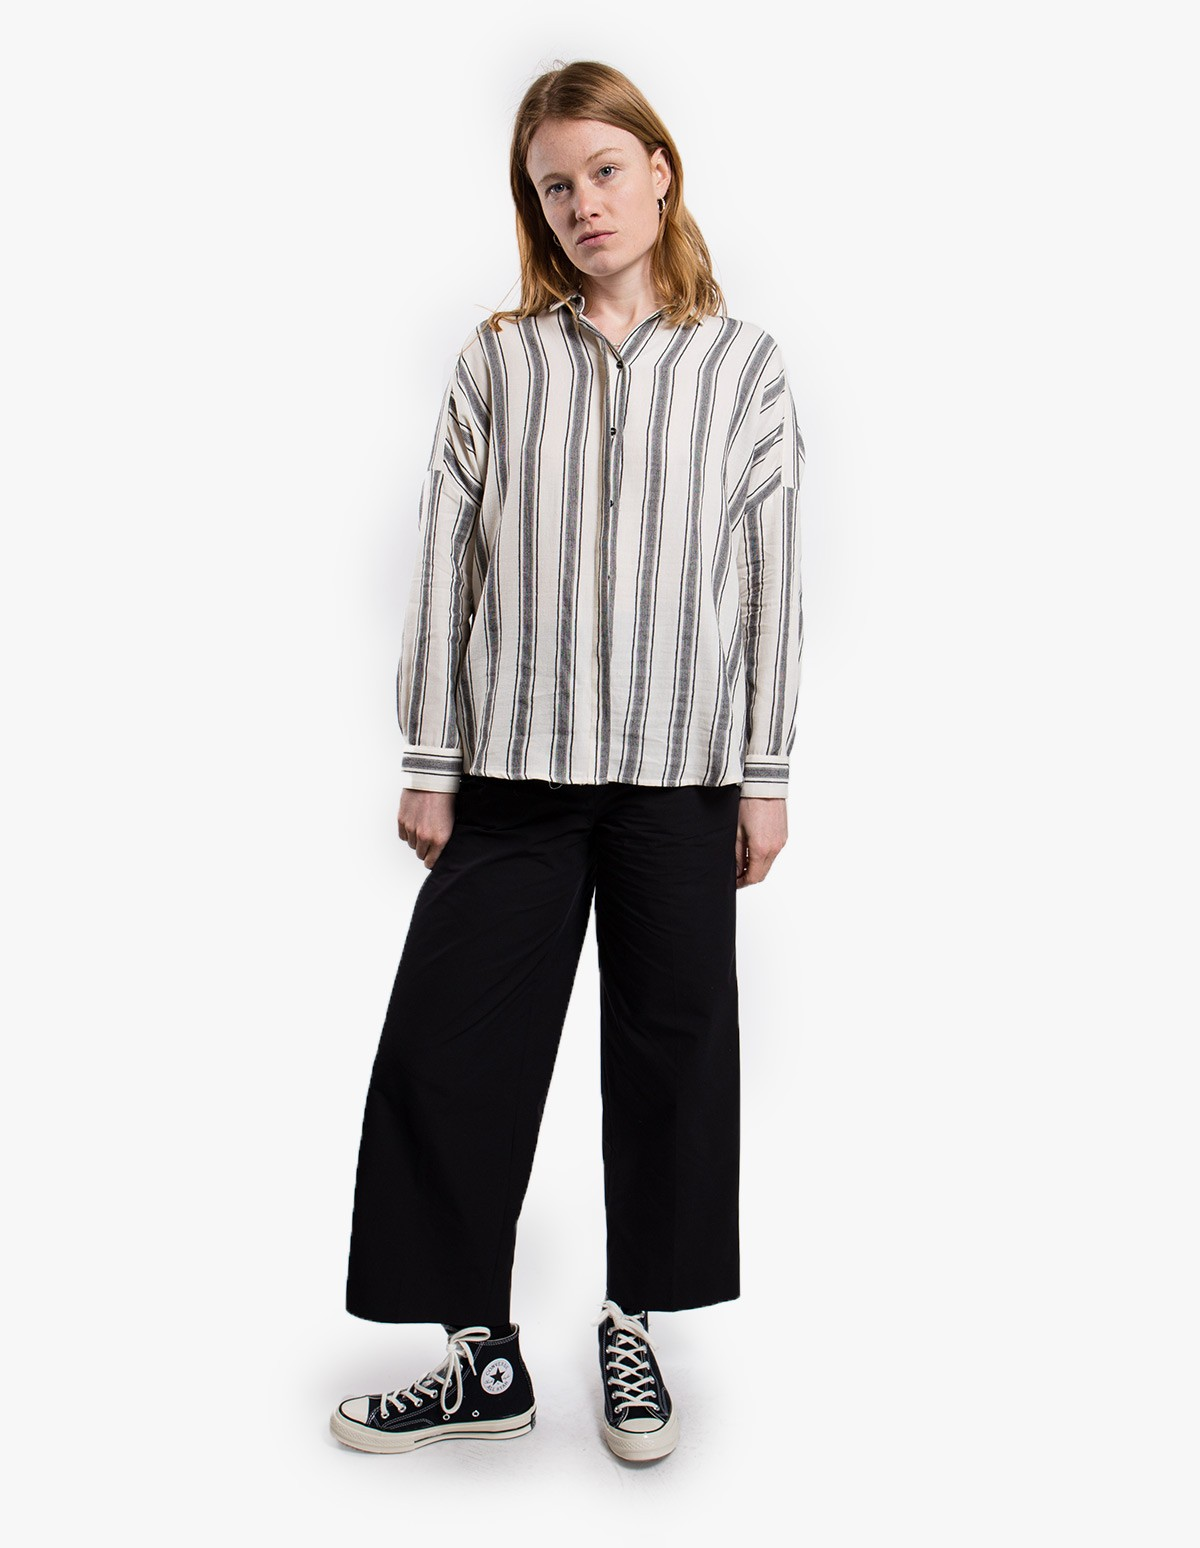 Sessùn  Lima Shirt in White / Black